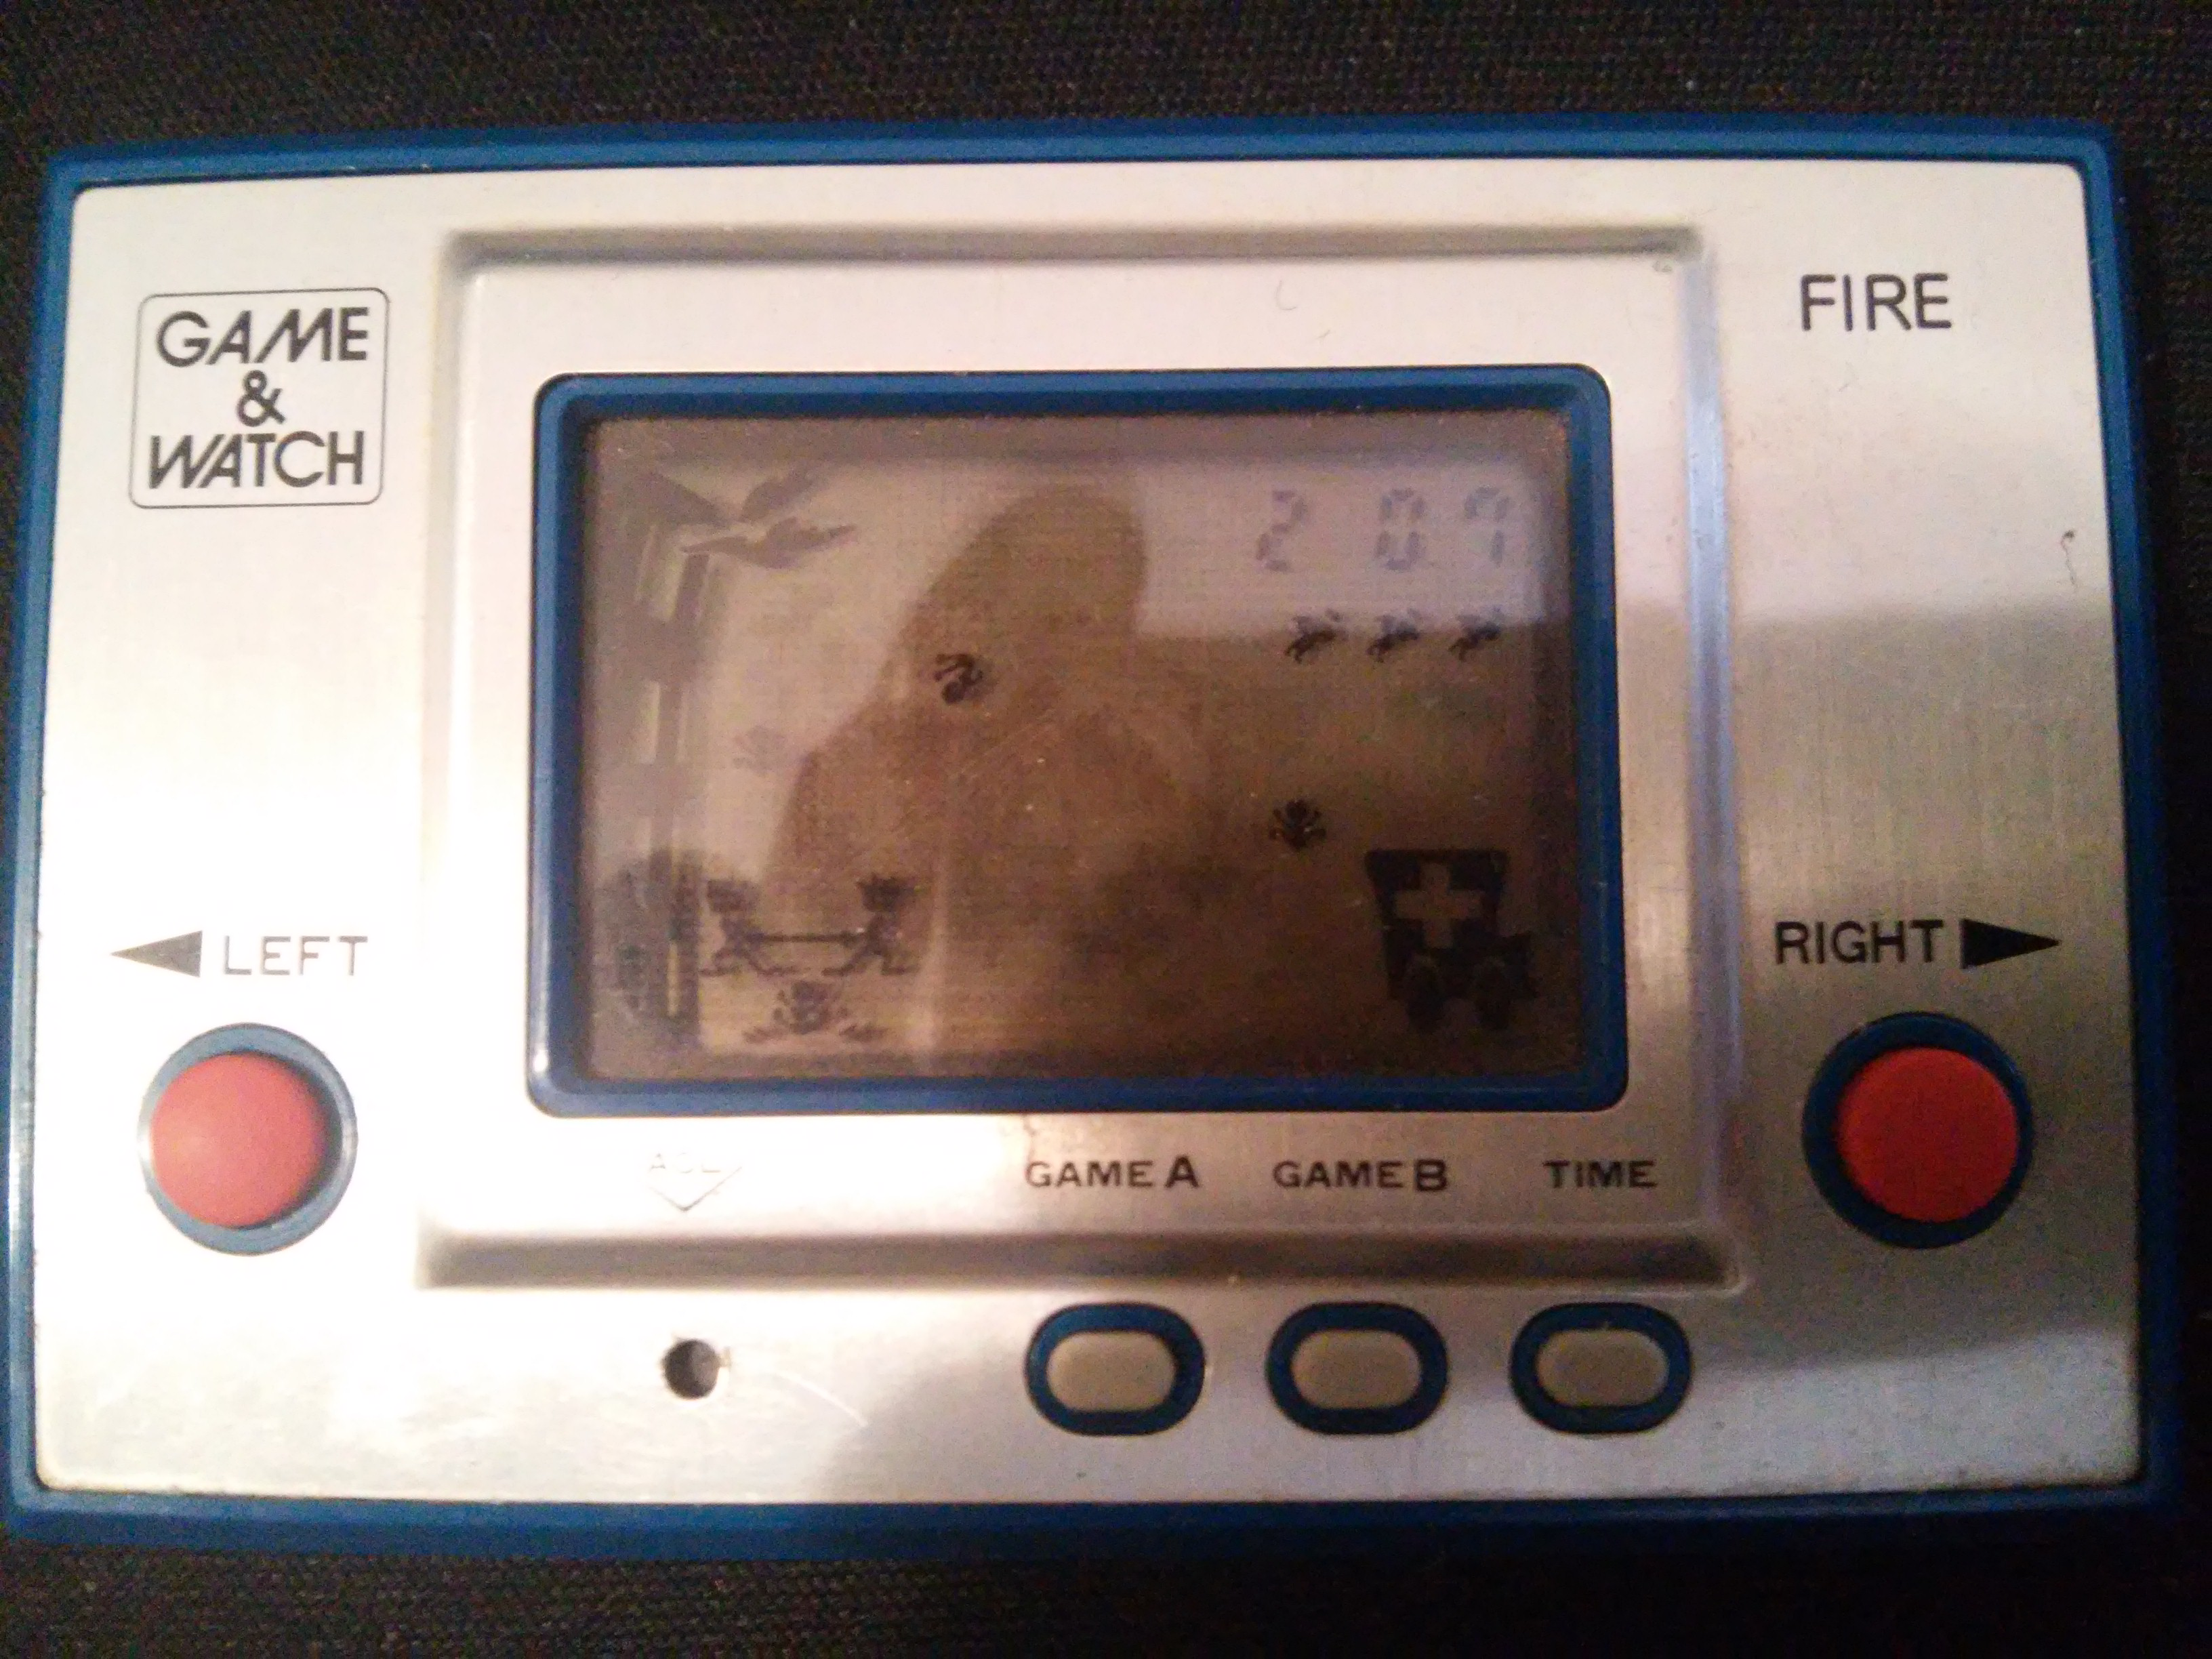 Game & Watch: Fire [aka Fireman Fireman] [Game B] 207 points